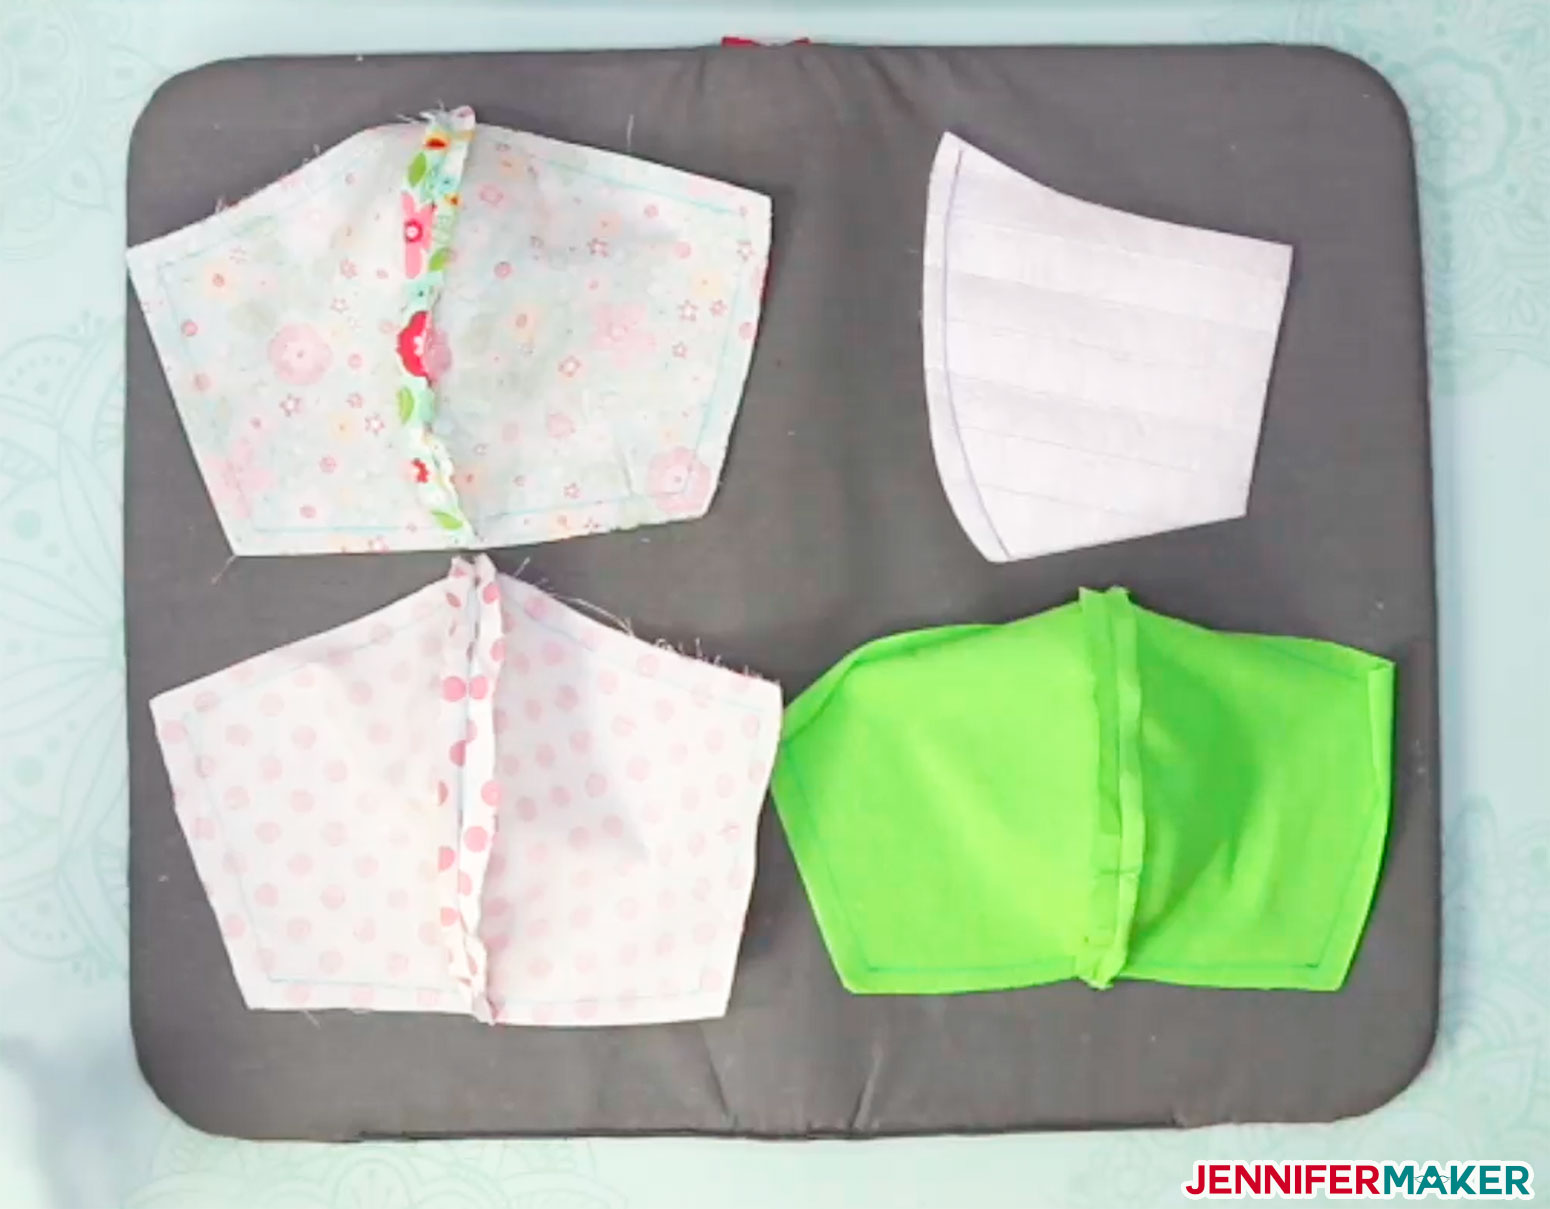 DIY face mask pattern pieces with the seams pressed open